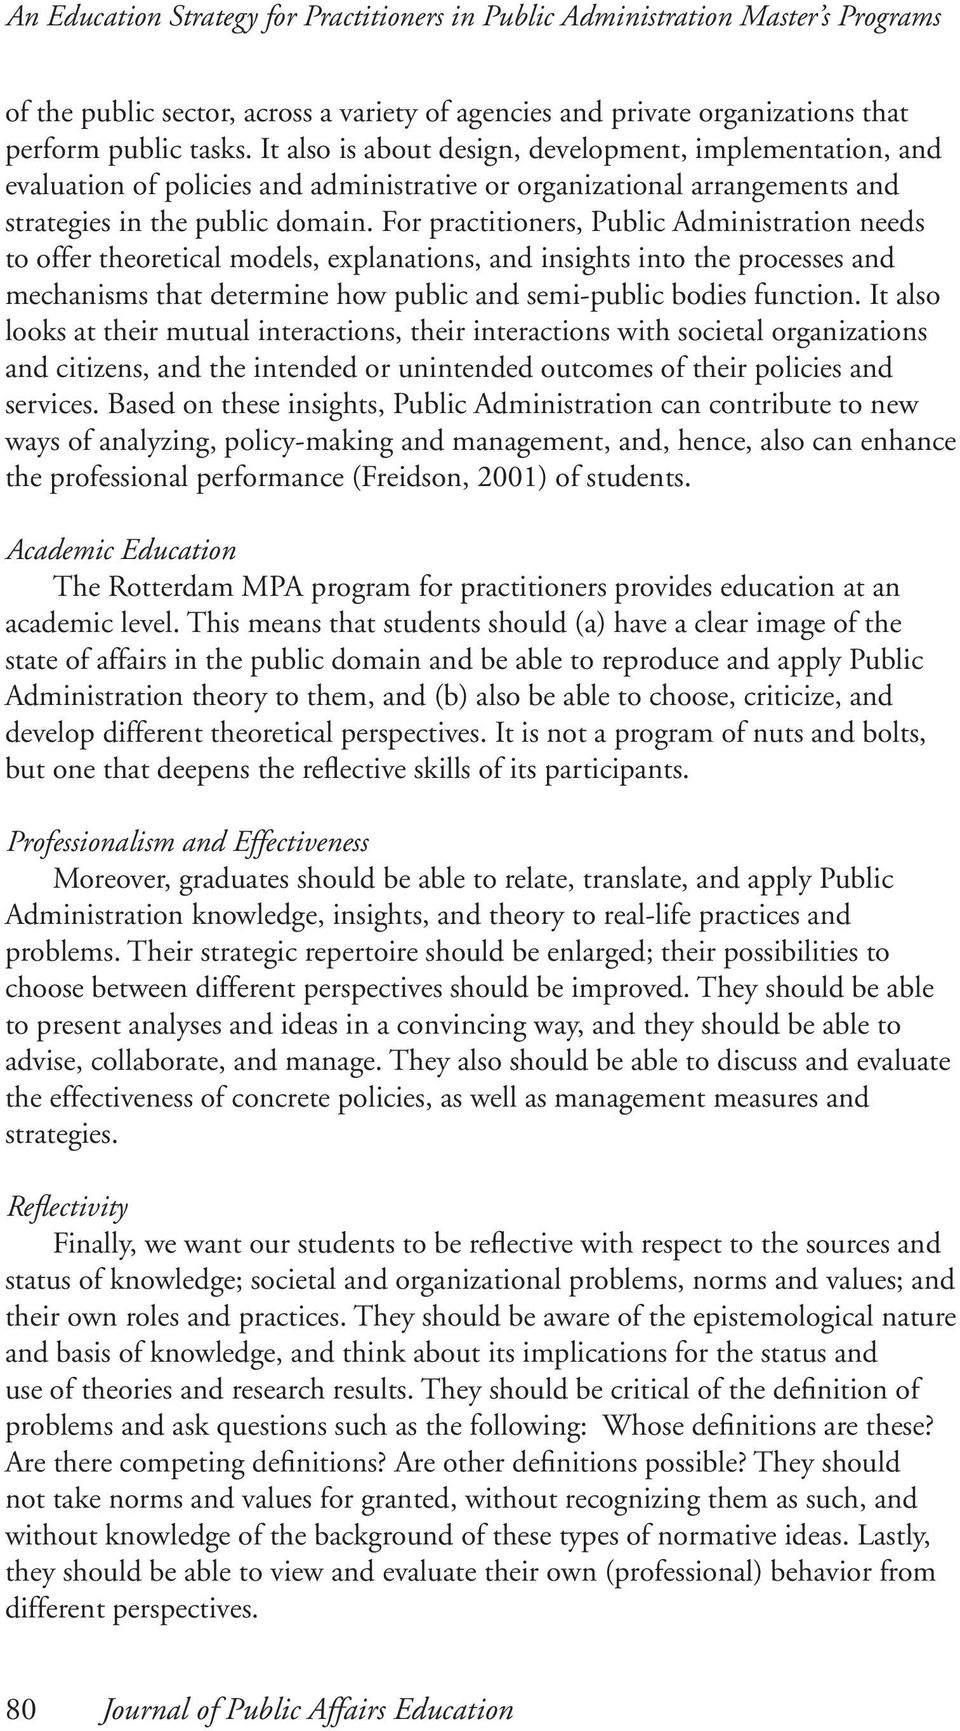 For practitioners, Public Administration needs to offer theoretical models, explanations, and insights into the processes and mechanisms that determine how public and semi-public bodies function.